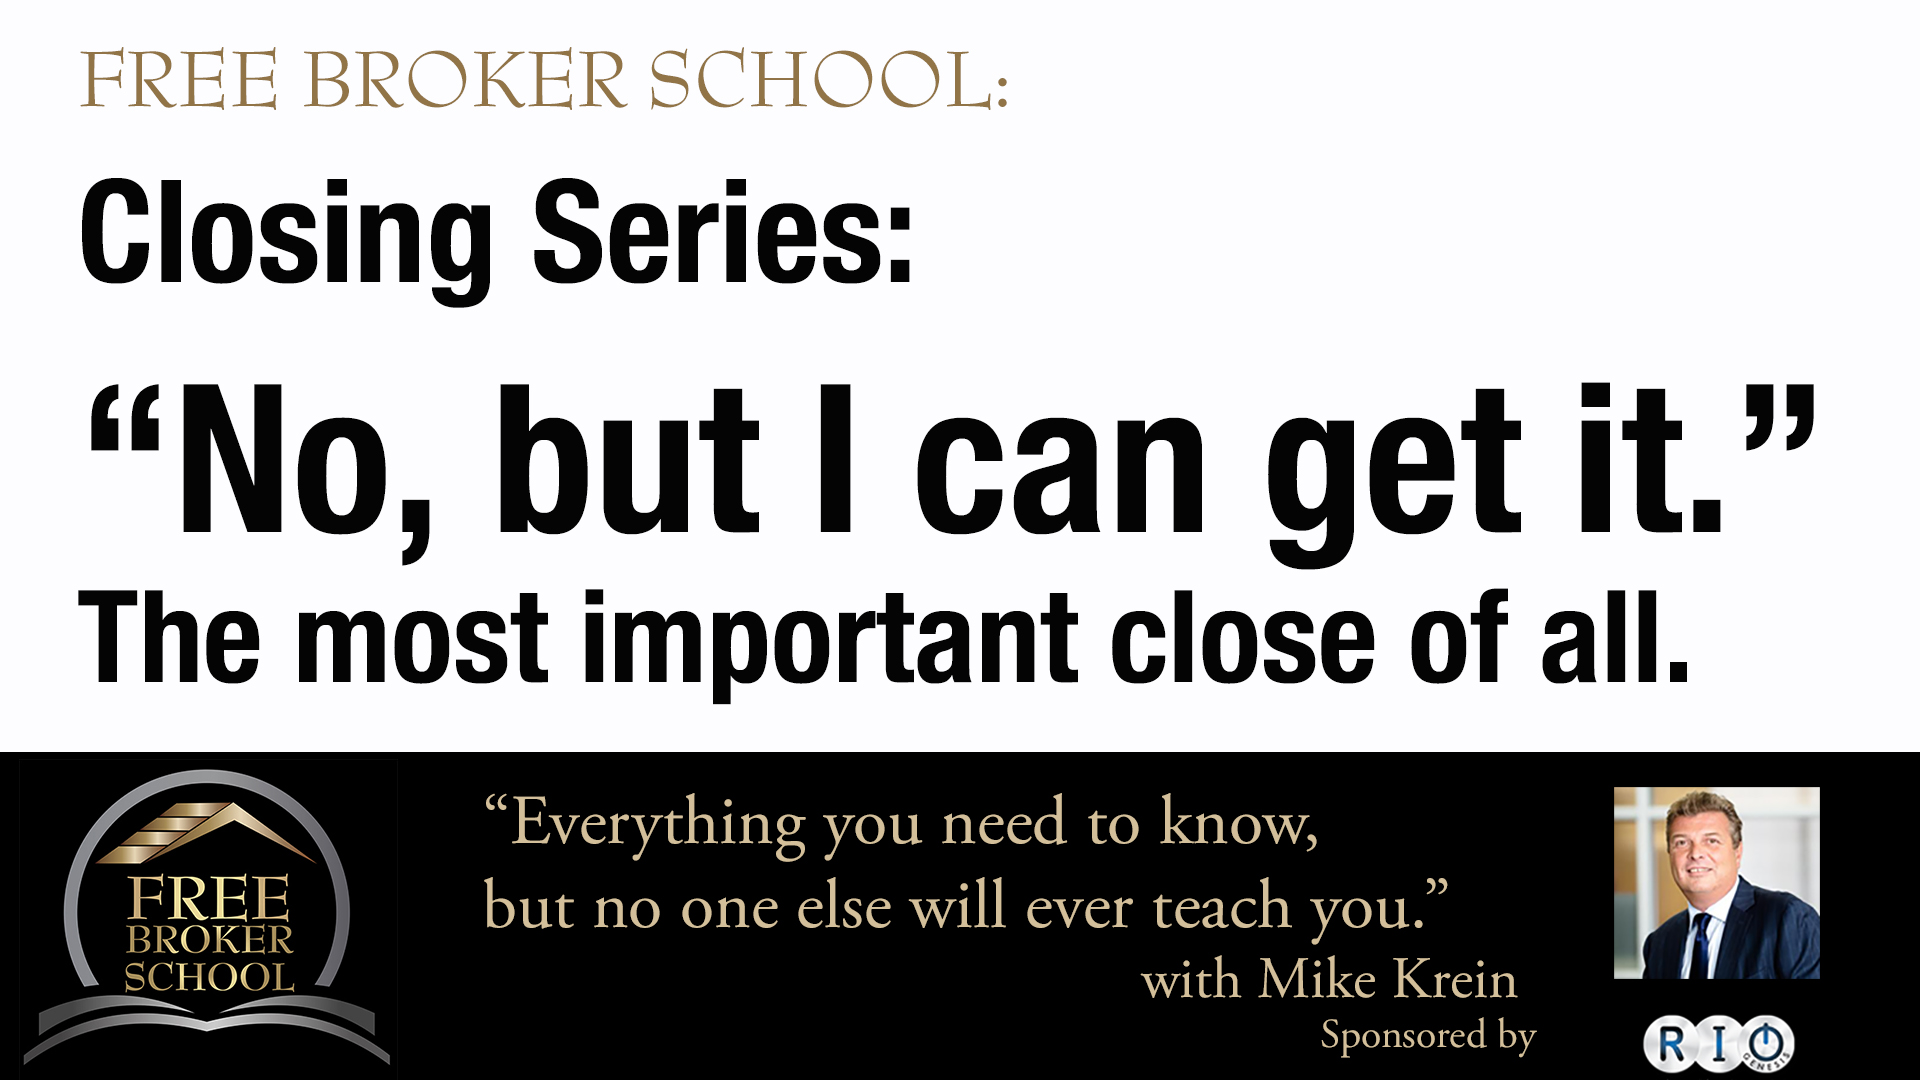 "Free Broker School: Closing Series: ""No, but I can get it."" The most important close of all."